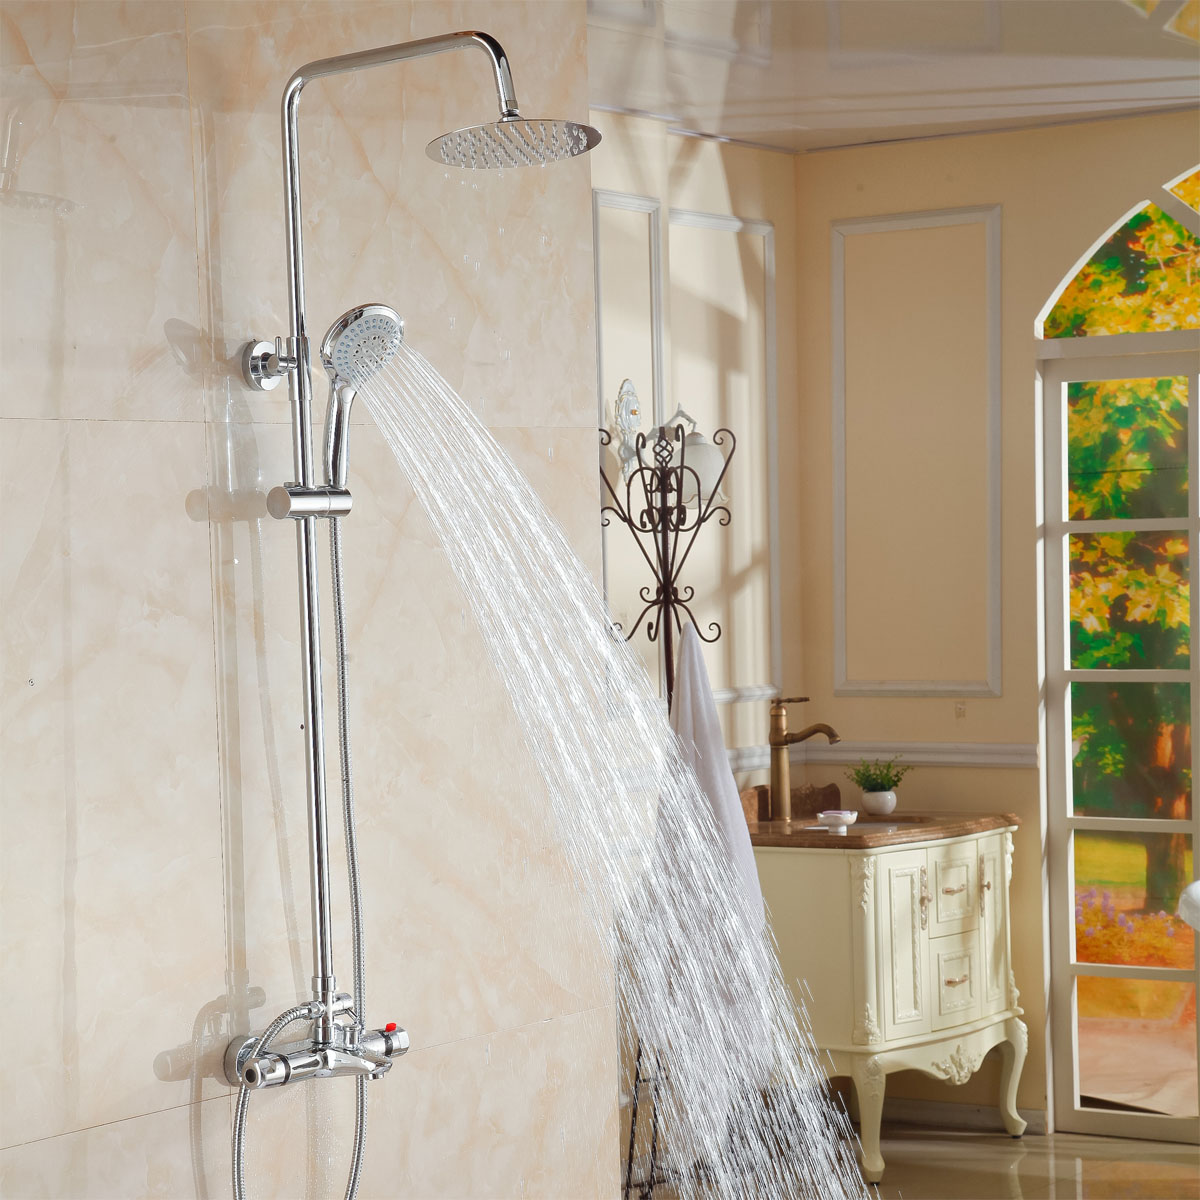 Thermostatic shower faucet shower faucet faucet shower set full copper faucet shipping china sanitary ware chrome wall mount thermostatic water tap water saver thermostatic shower faucet